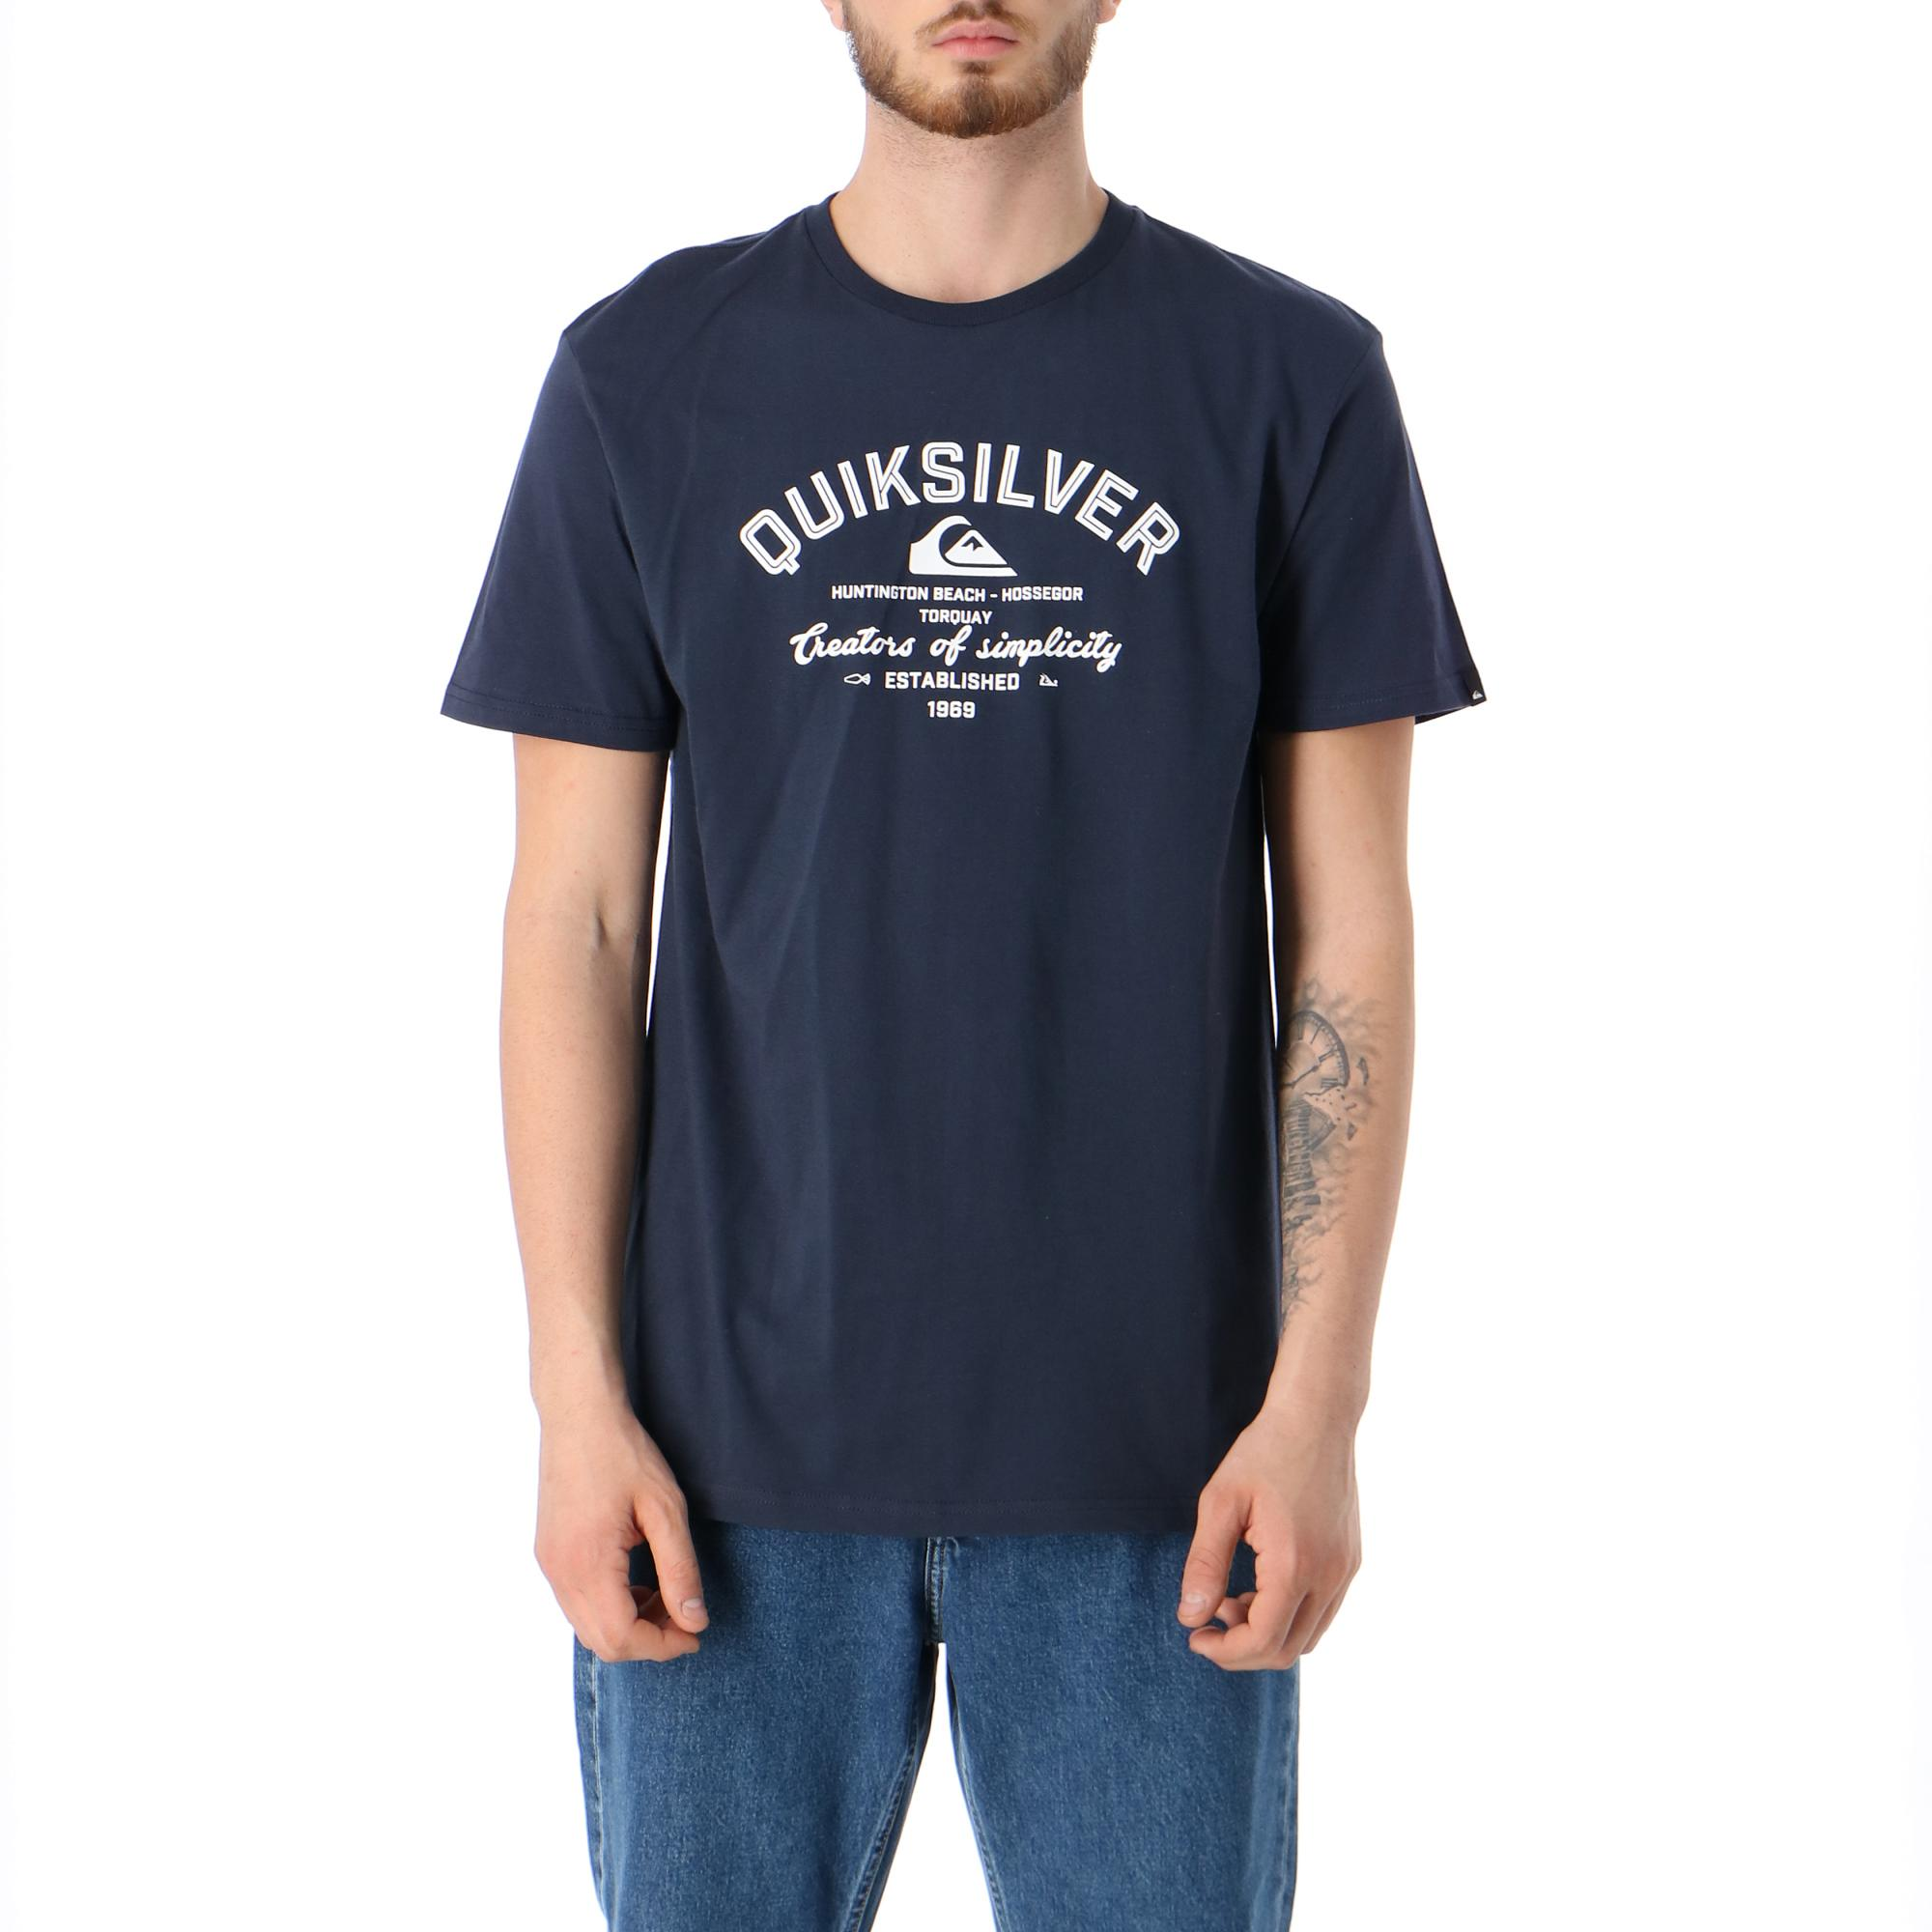 Quiksilver Creator Of Simplicity Ss 2 Parisian night